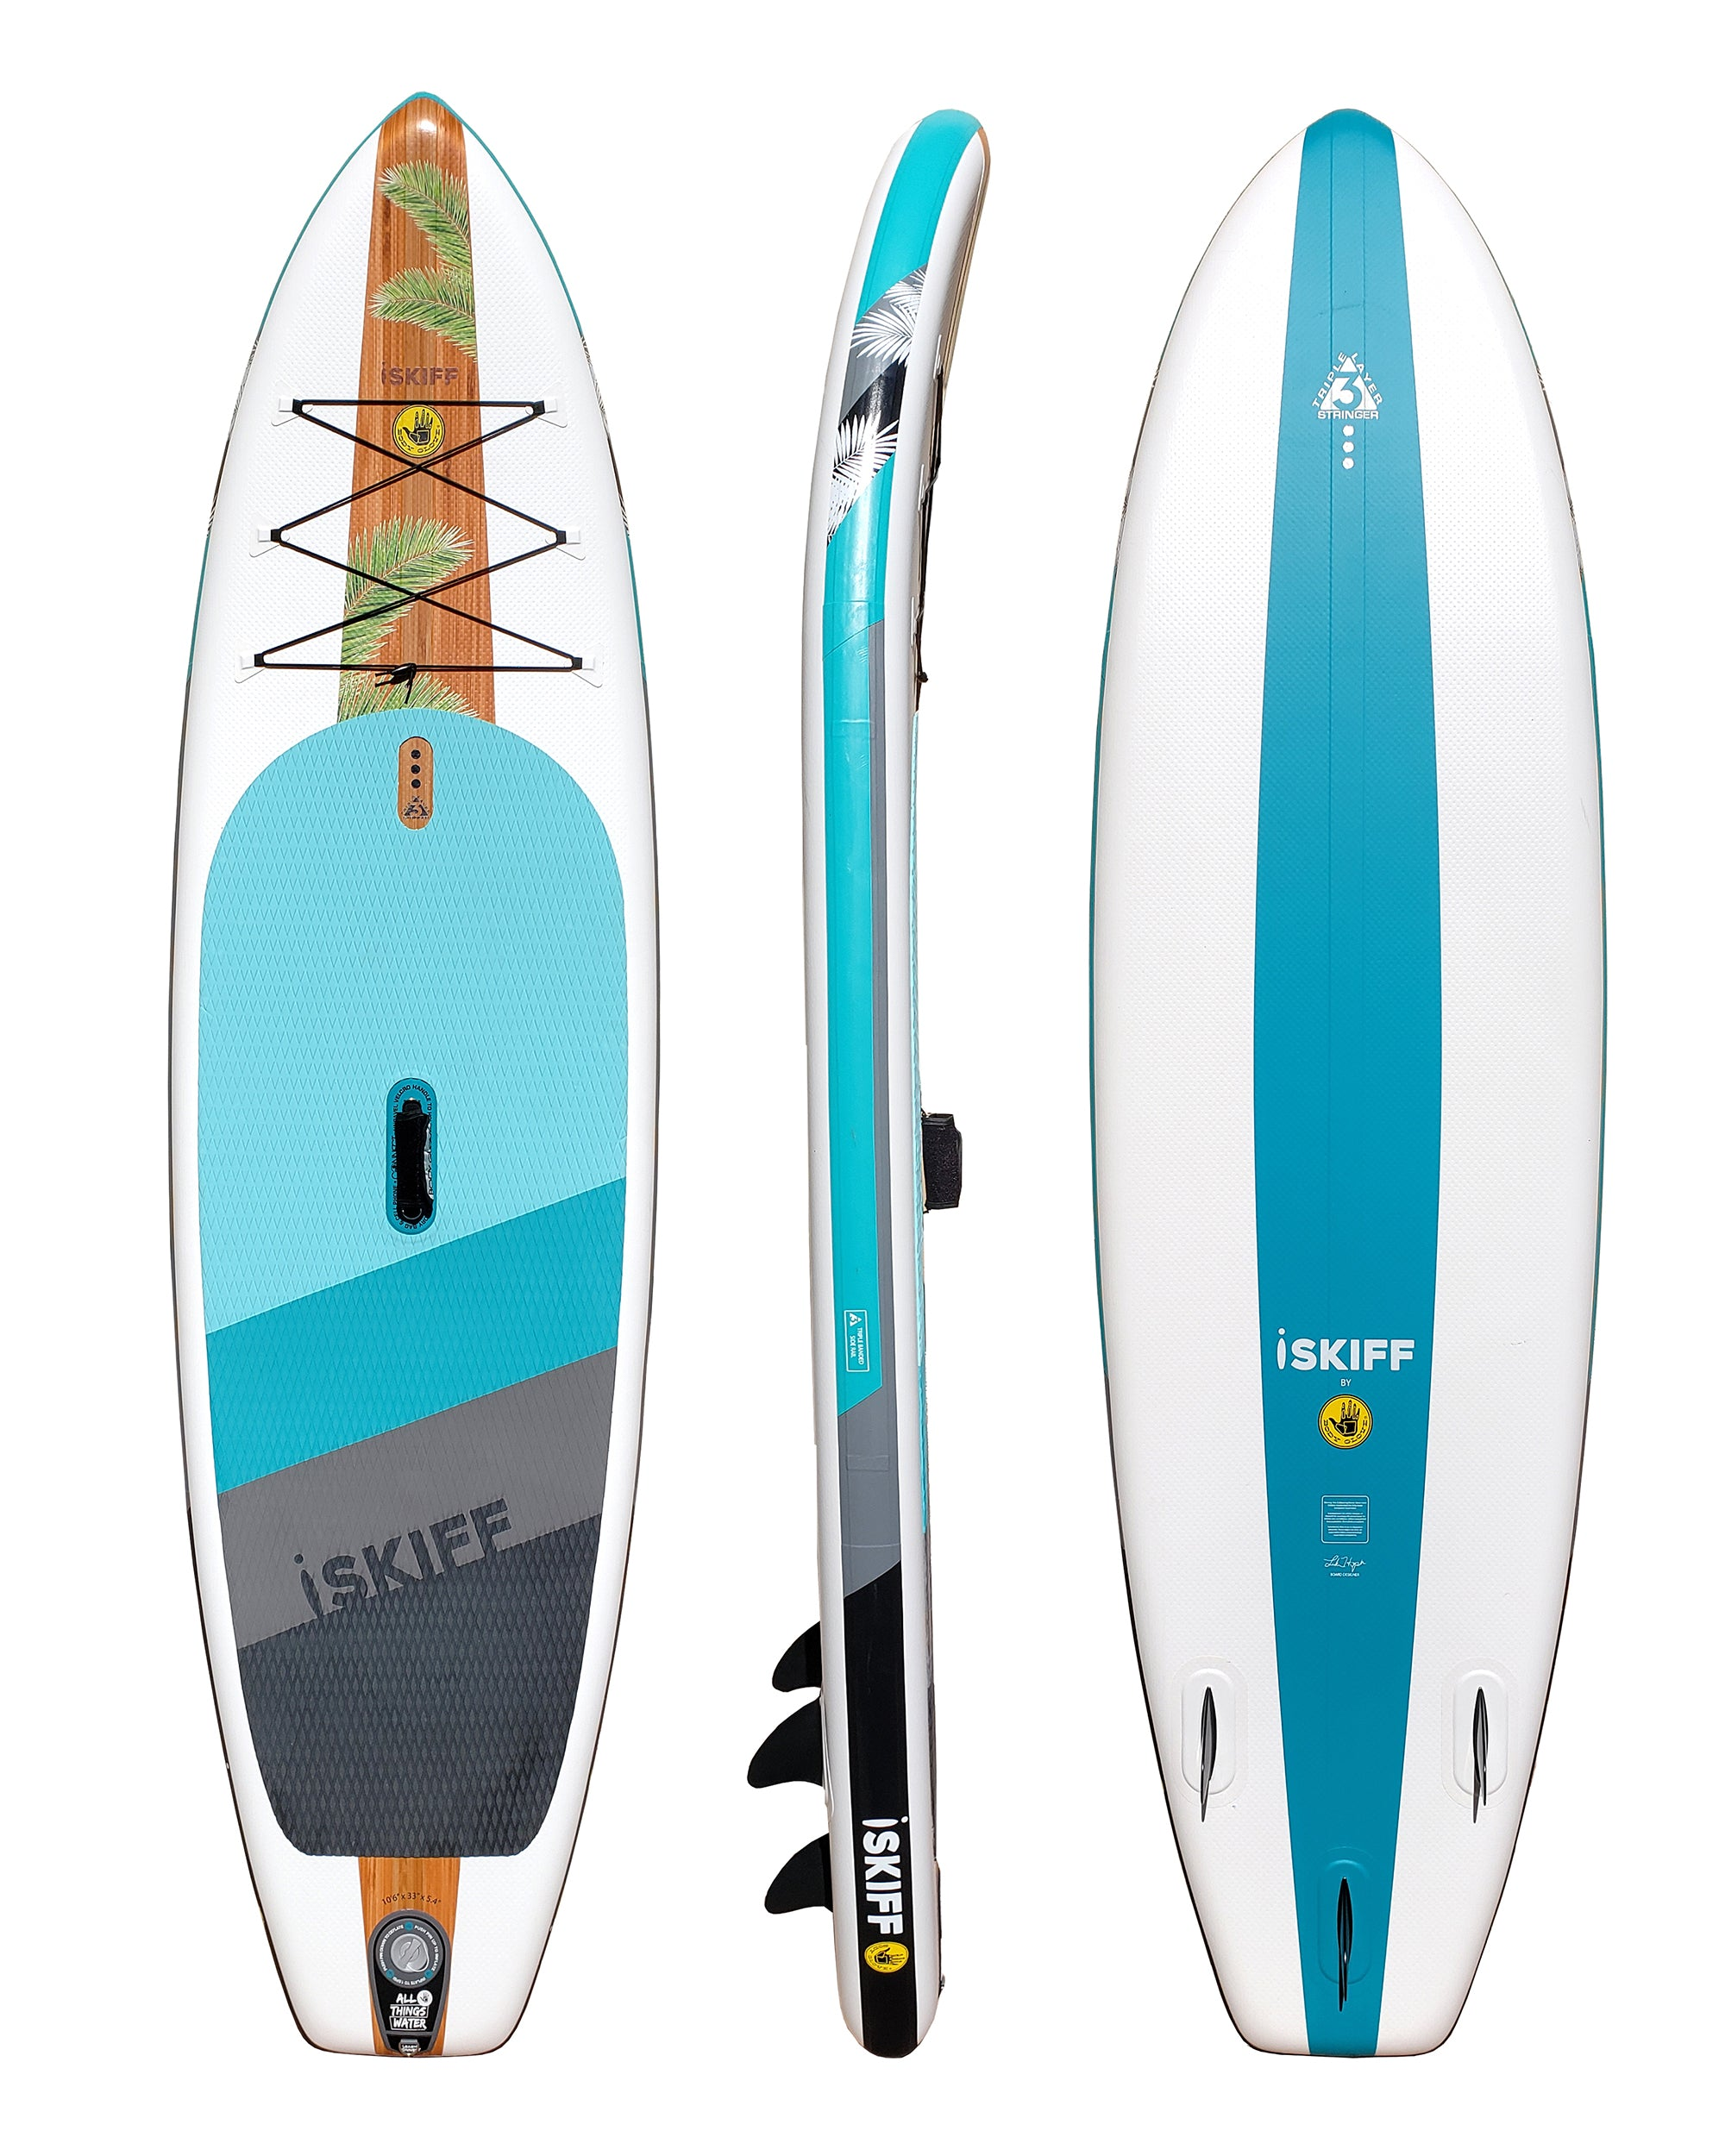 "iSkiff 10'6"" Inflatable Stand Up Paddle Board (ISUP) with Bag, Paddle & Pump"